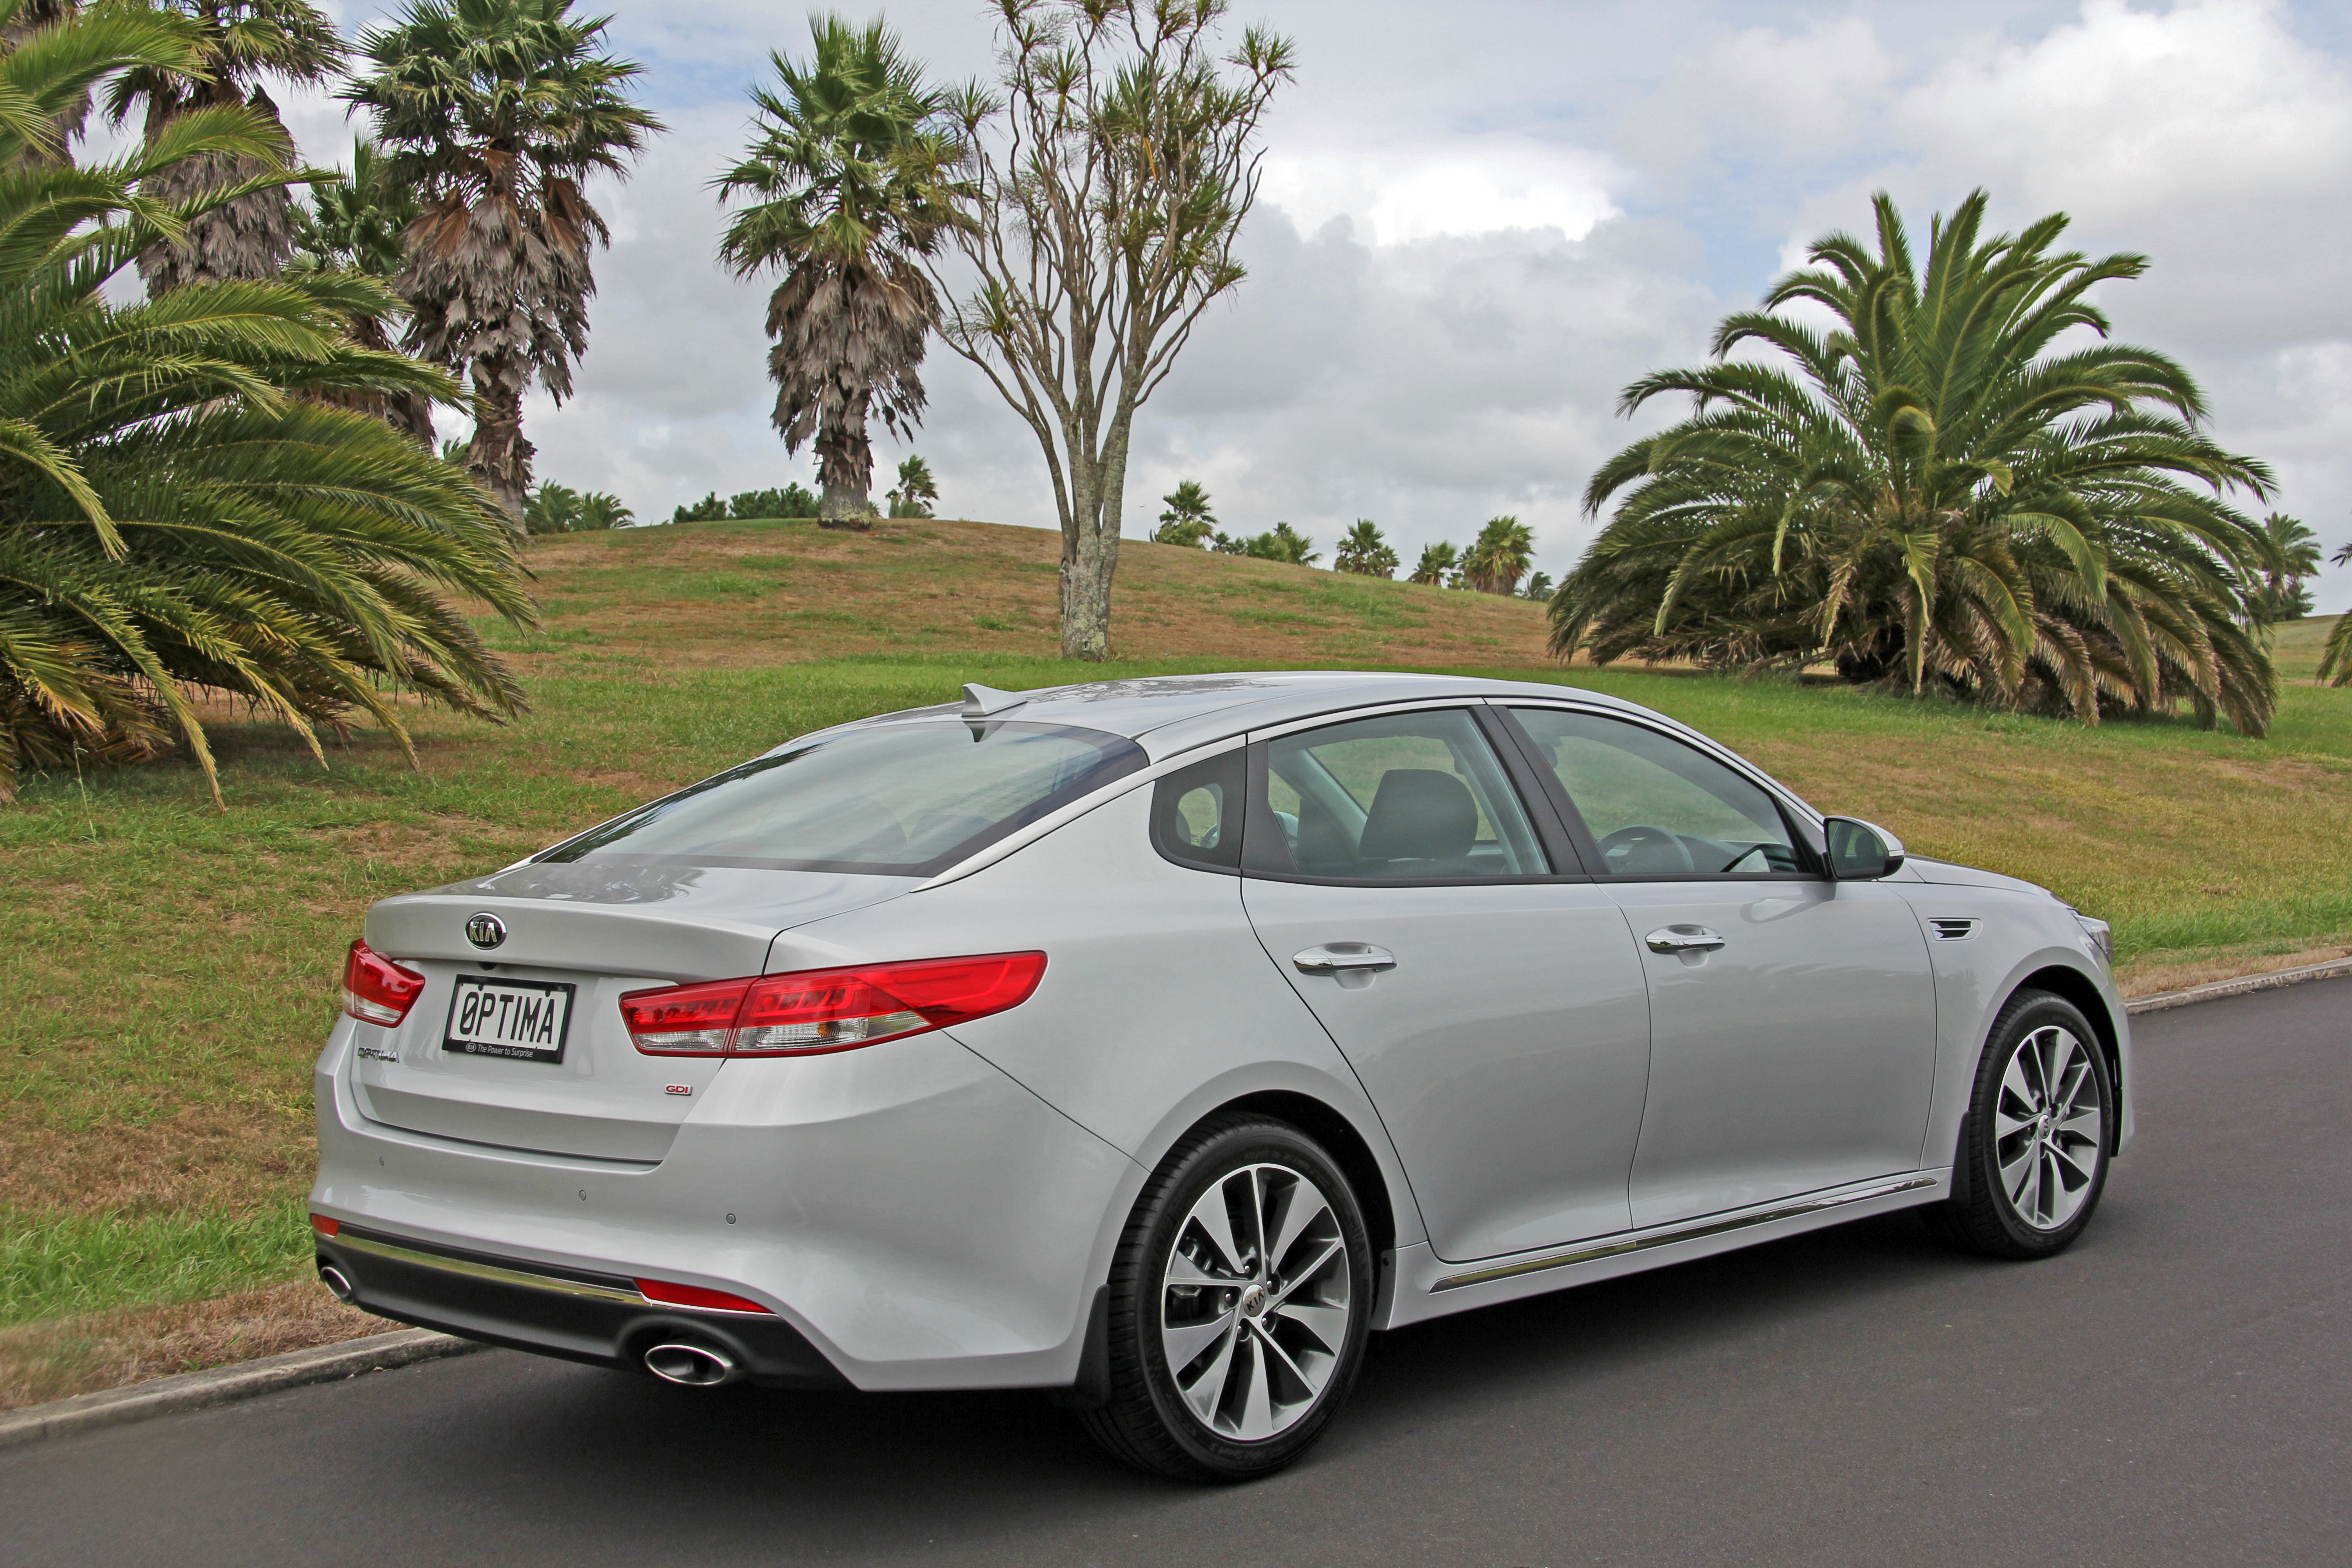 Kia Special Offers >> New Kia Optima: More space, luxury & safety · New SUVs & Cars, Special Offers | Kia New Zealand